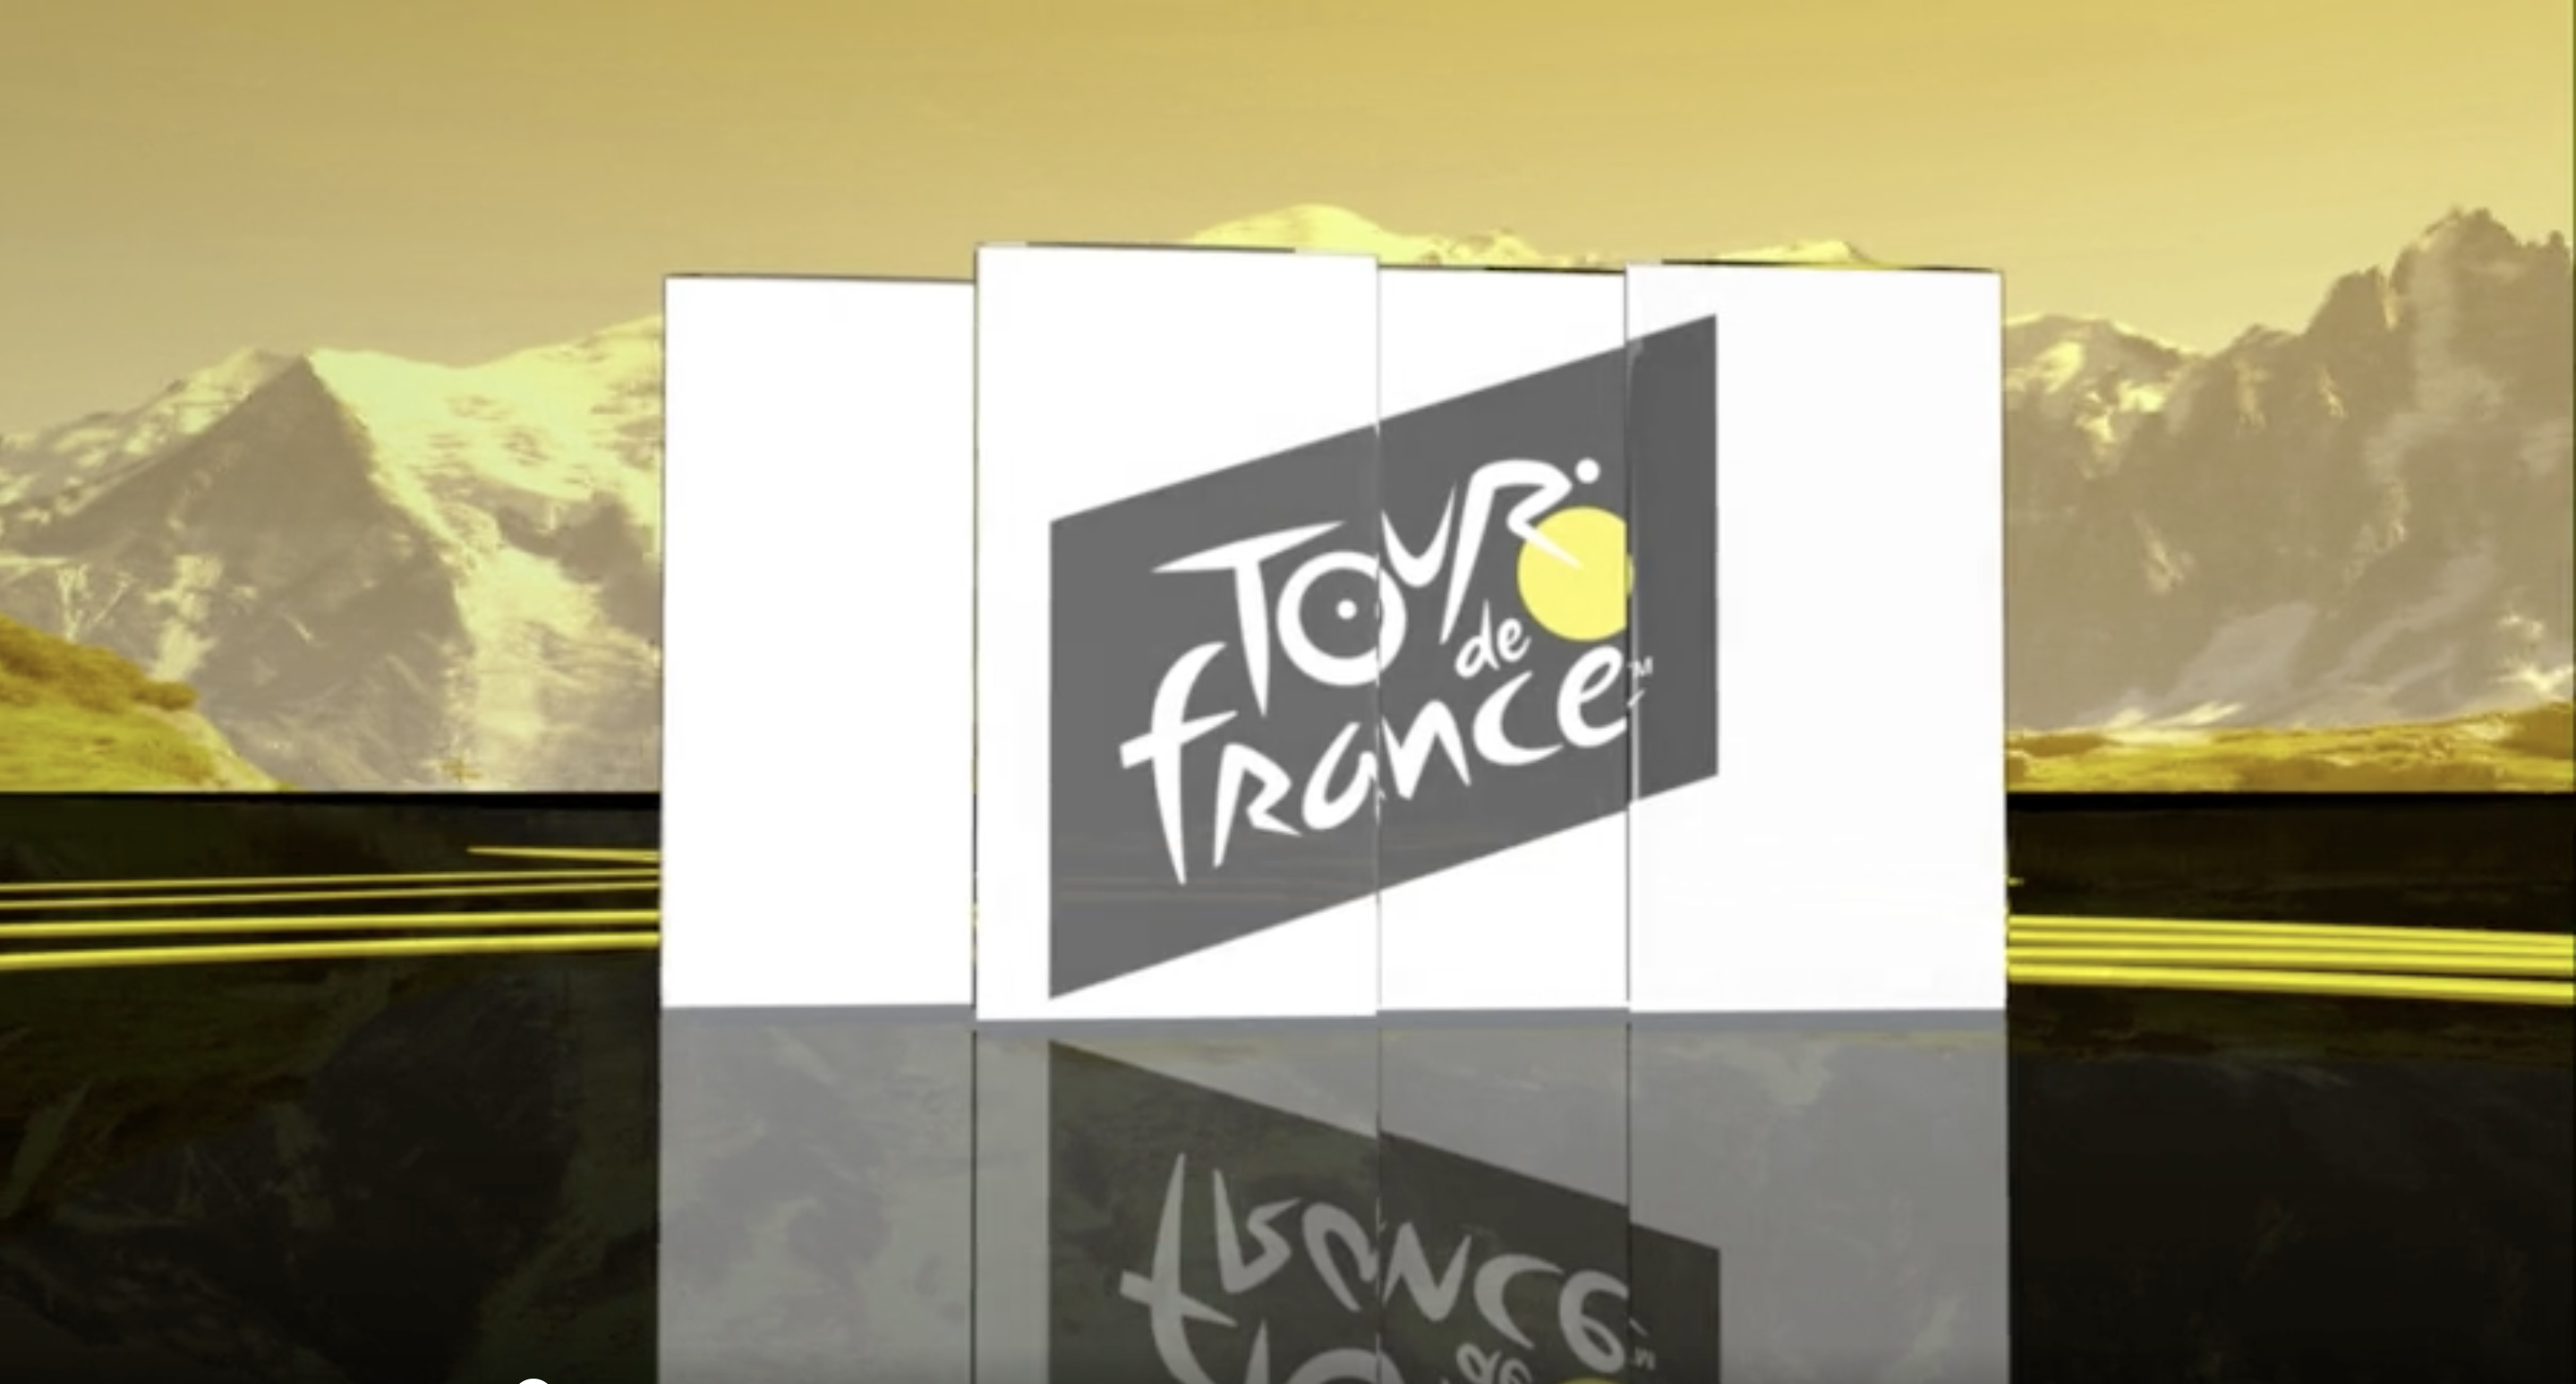 Itv4 S Tour De France Theme Music Available On Itunes Cyclist